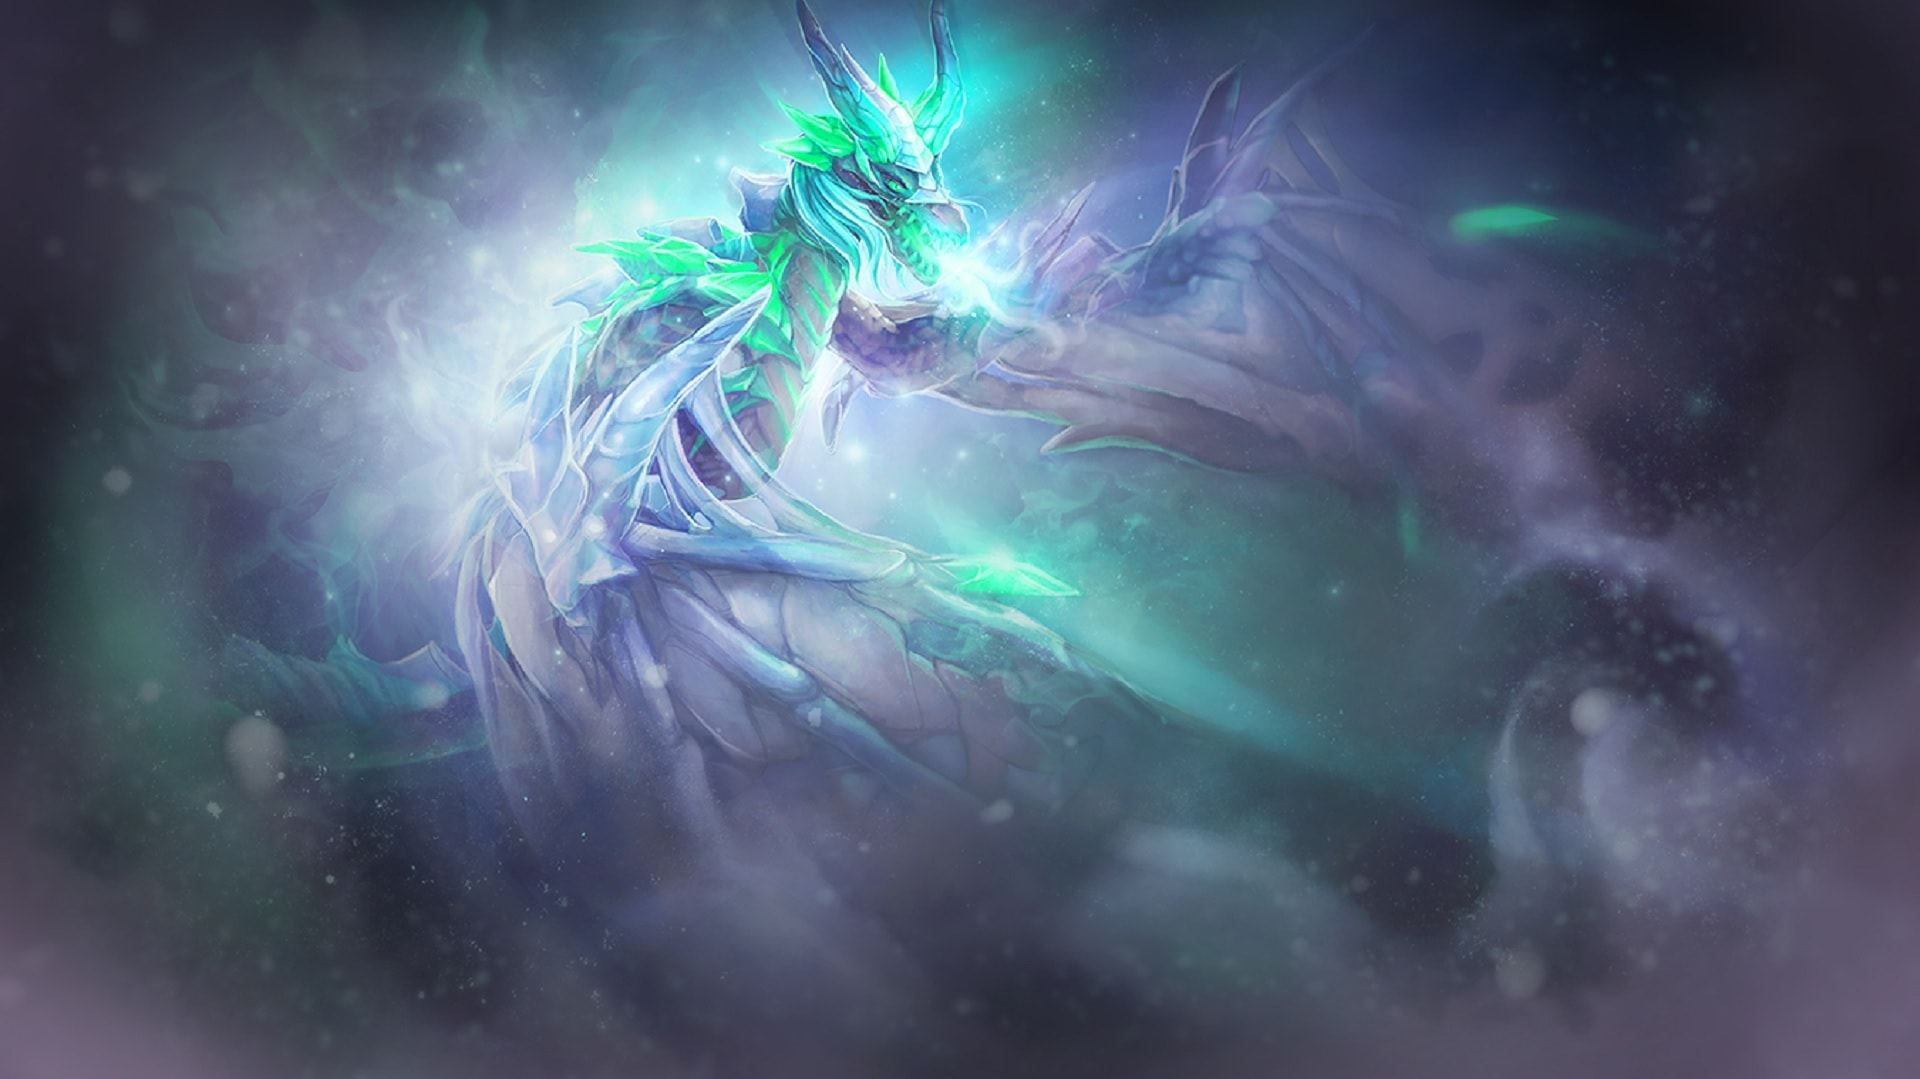 Dota 2 : Winter Wyvern Wallpapers hd